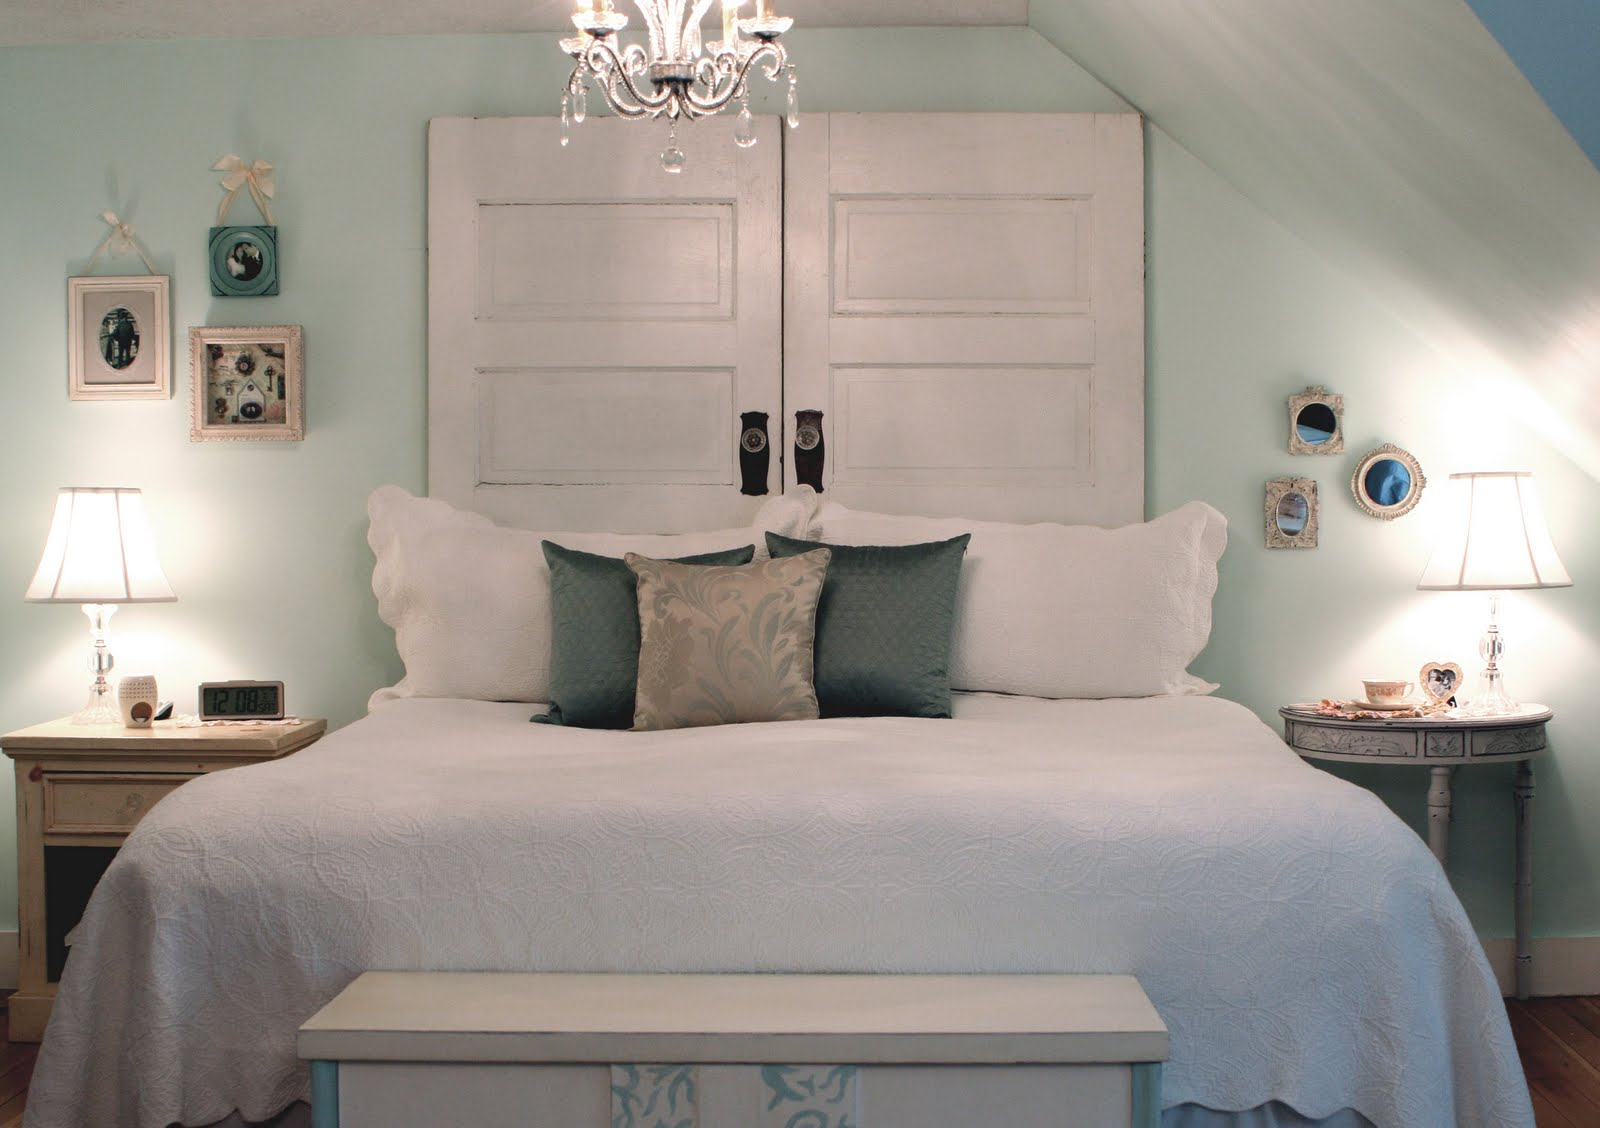 Design A Peele How To Make A Headboard Out Of A Door Part 1 Interiors Inside Ideas Interiors design about Everything [magnanprojects.com]